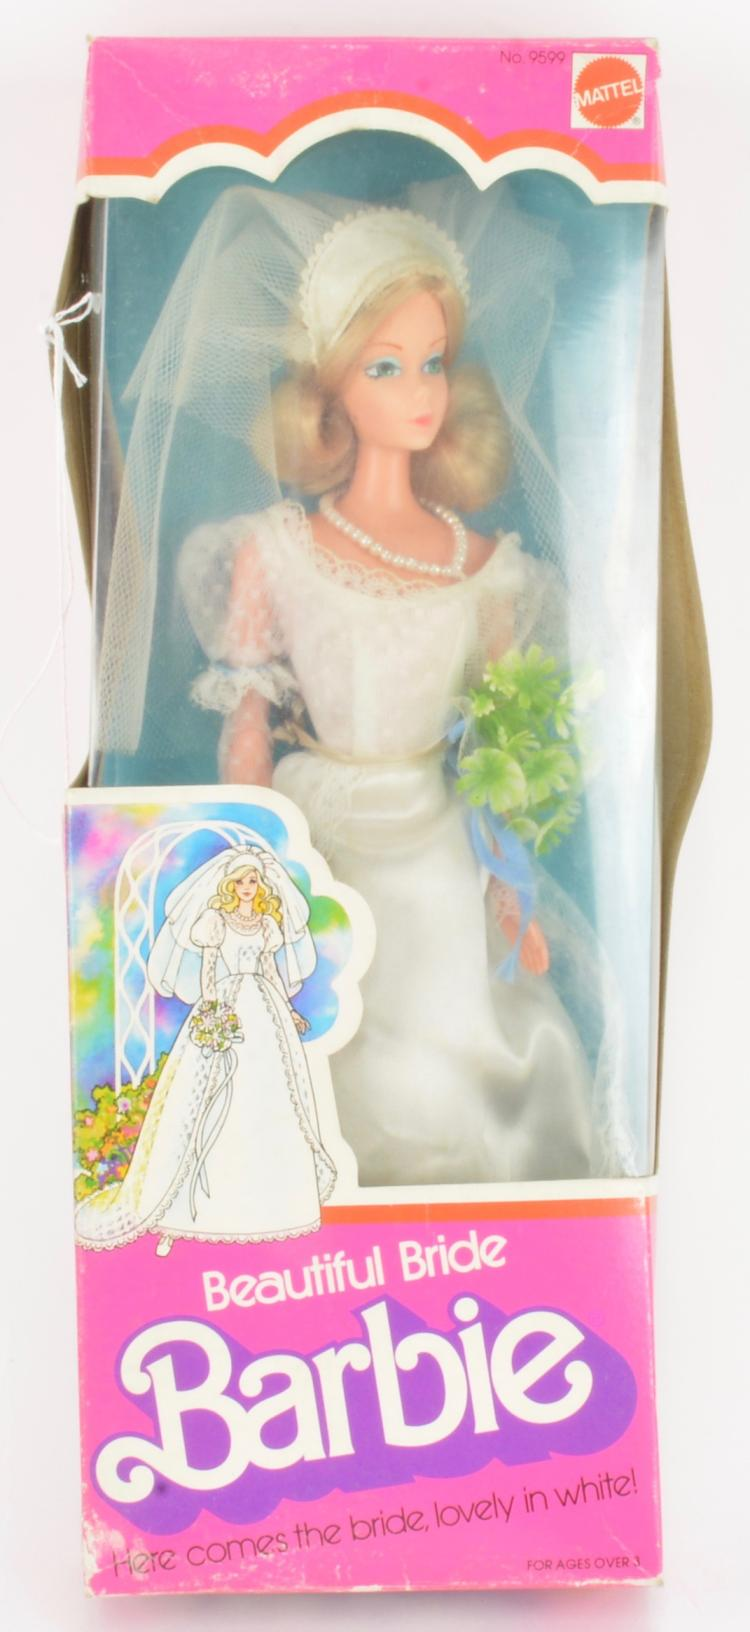 This Item Beautiful Bride Barbie 116